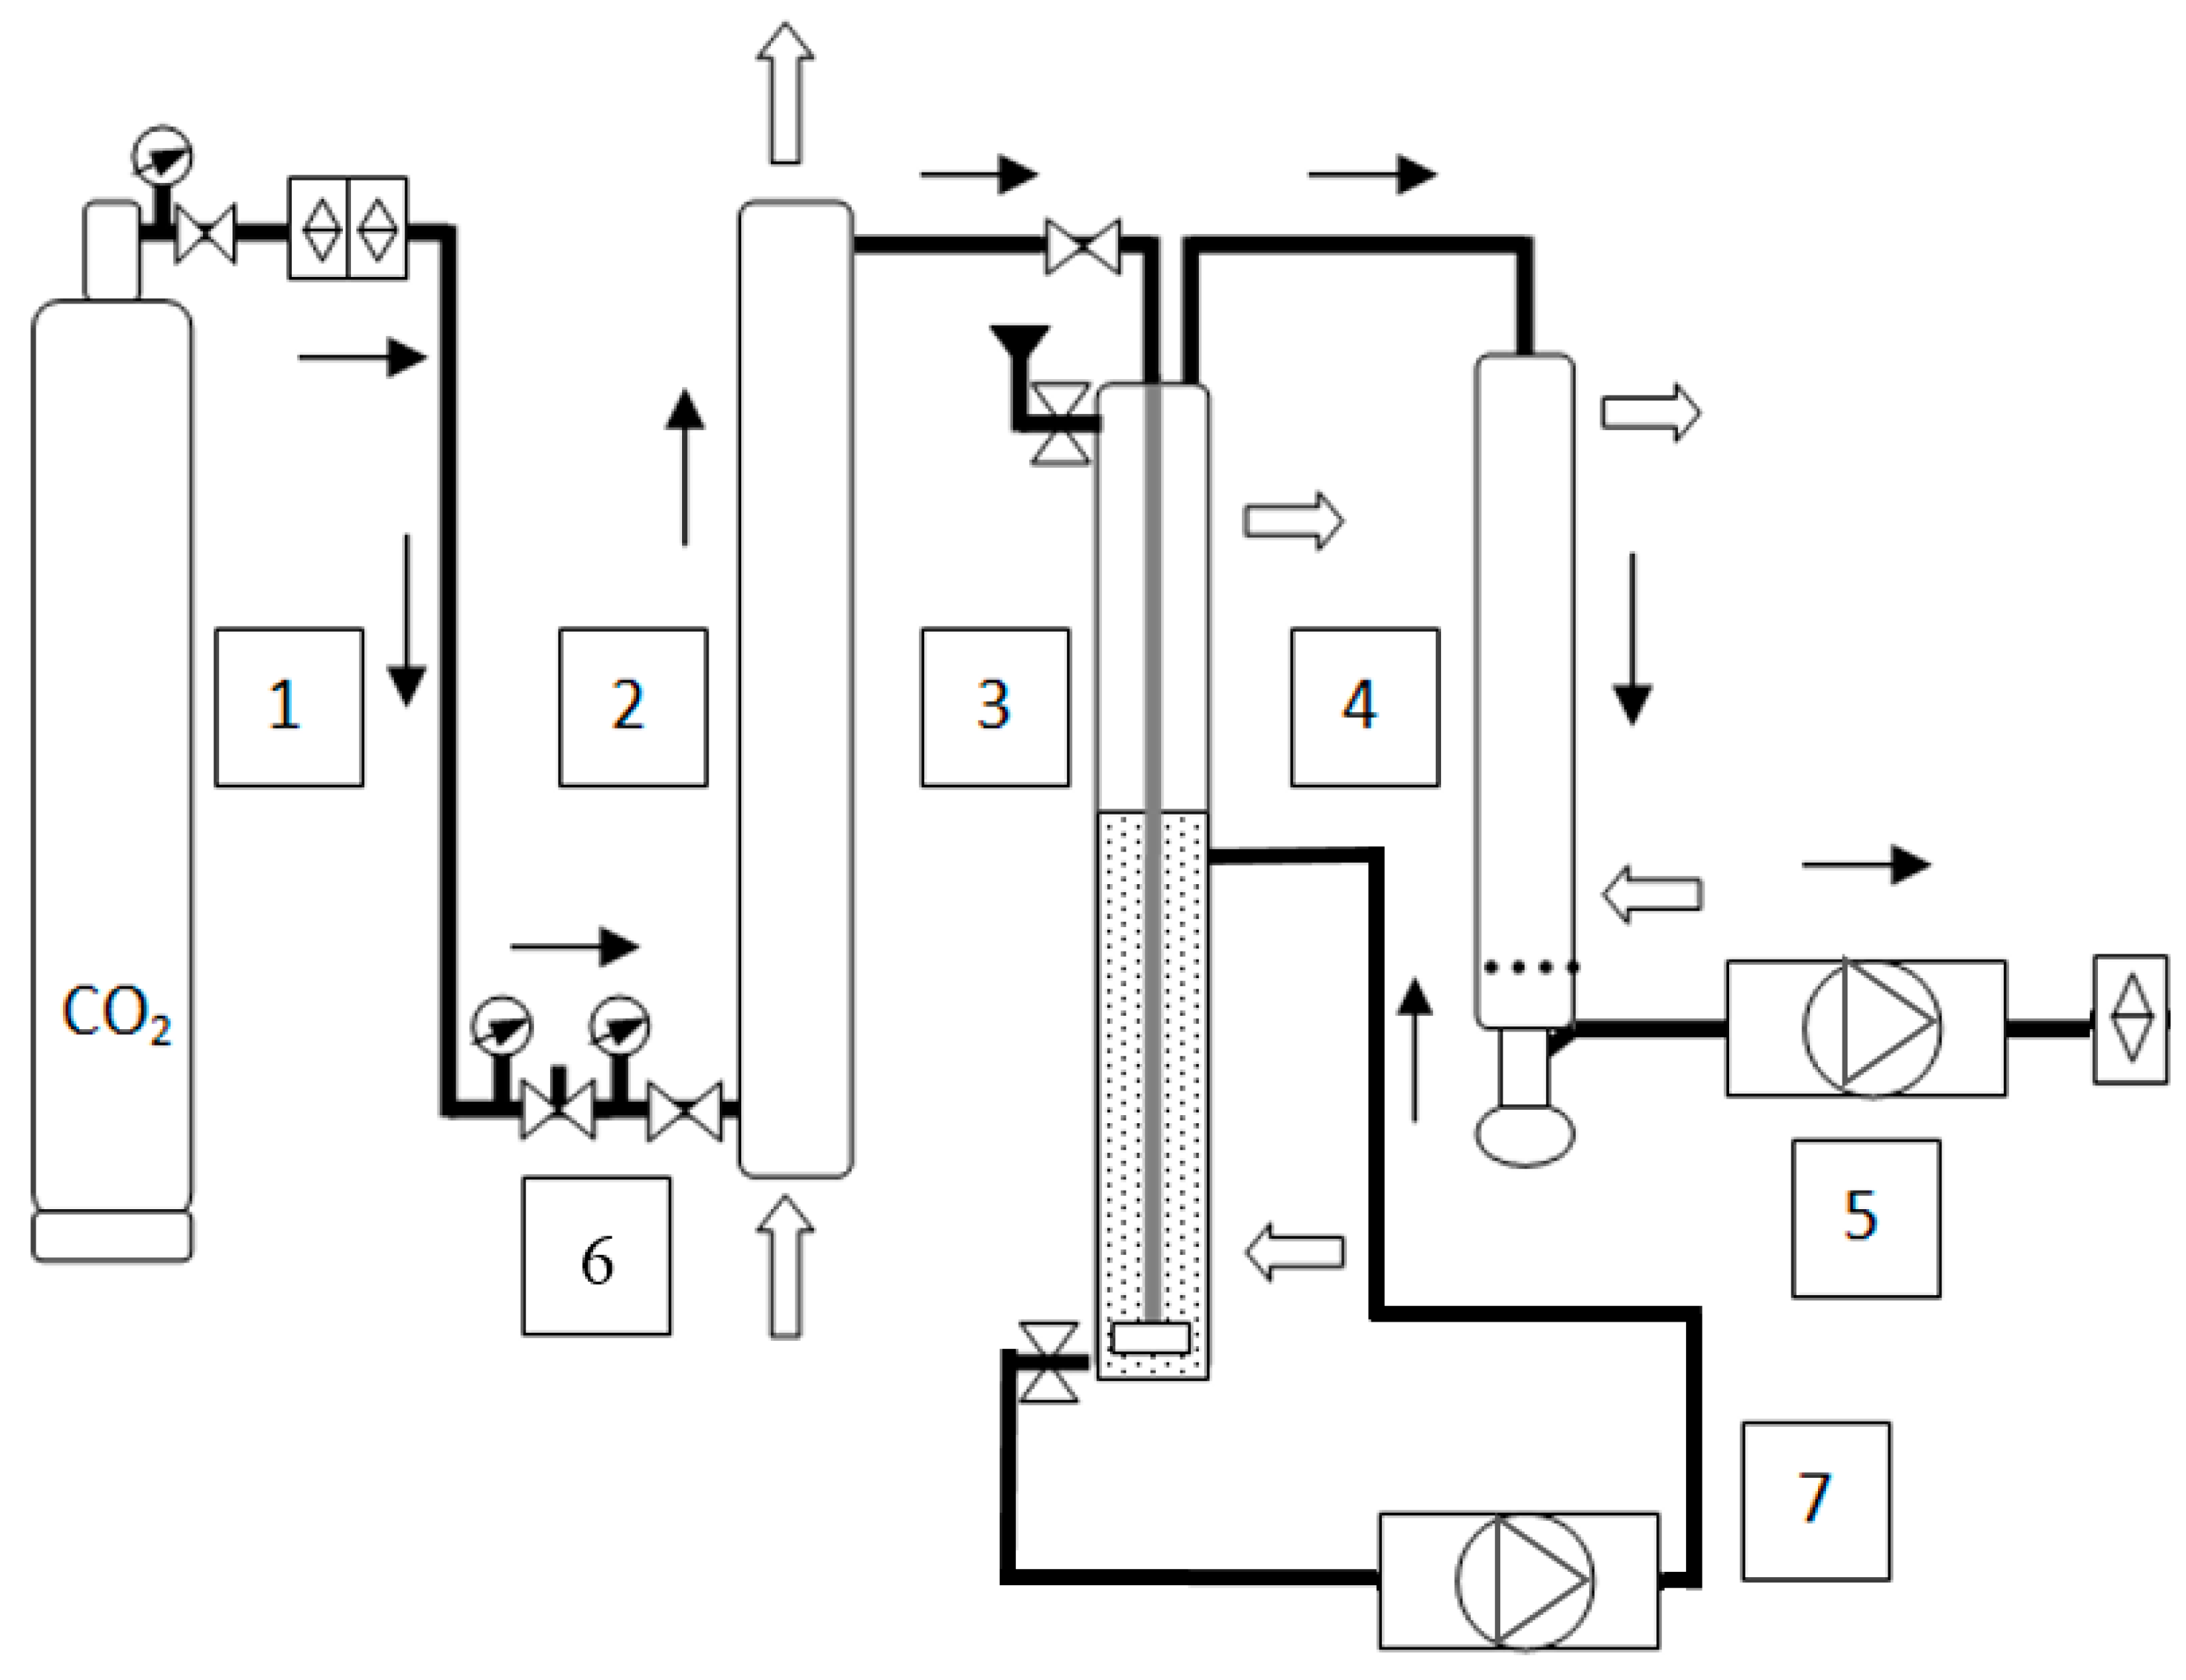 Fibers Free Full Text In Situ Vacuum Assisted Gas Stripping Pump Diagram Or Only The No